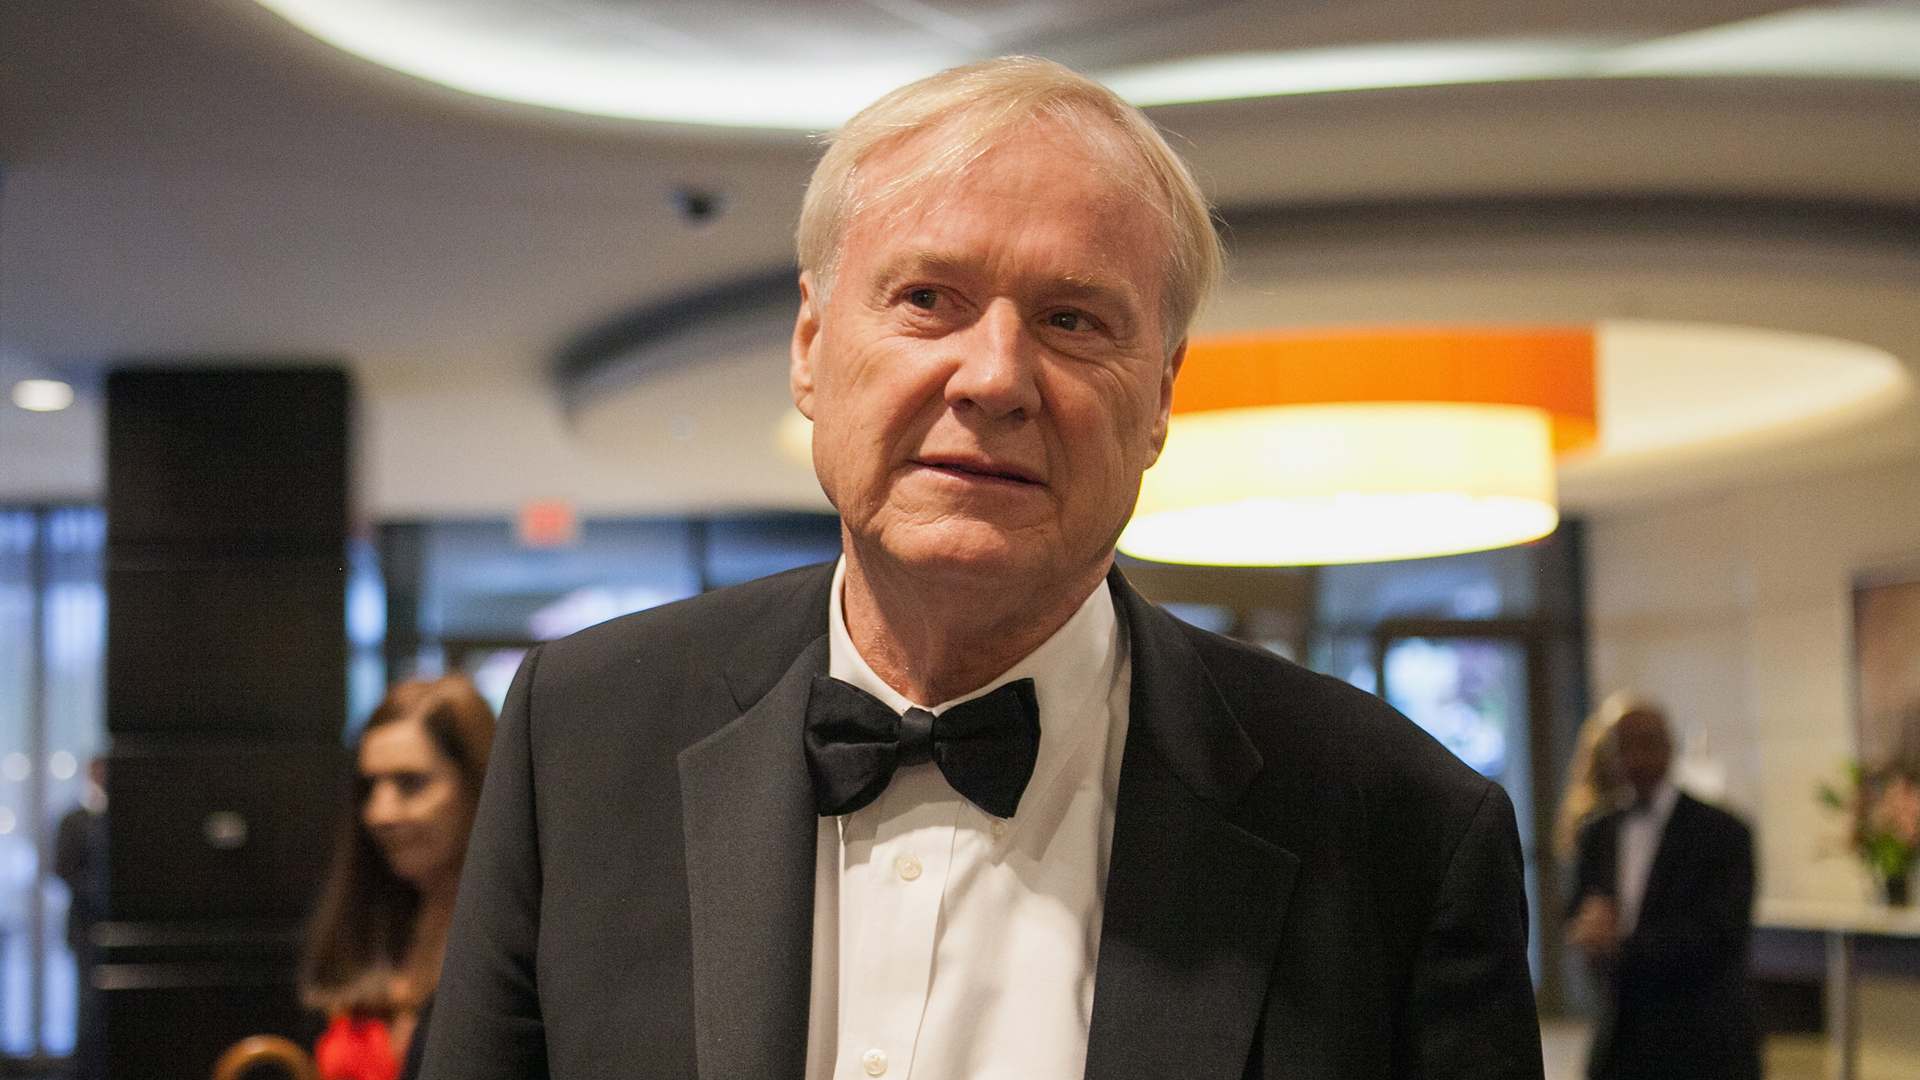 Chris Matthews, host of MSNBC's 'Hardball', attends the 101st Annual White House Correspondents' Association Dinner at the Washington Hilton on April 25, 2015 in Washington, DC. (Credit:Teresa Kroeger/Getty Images)